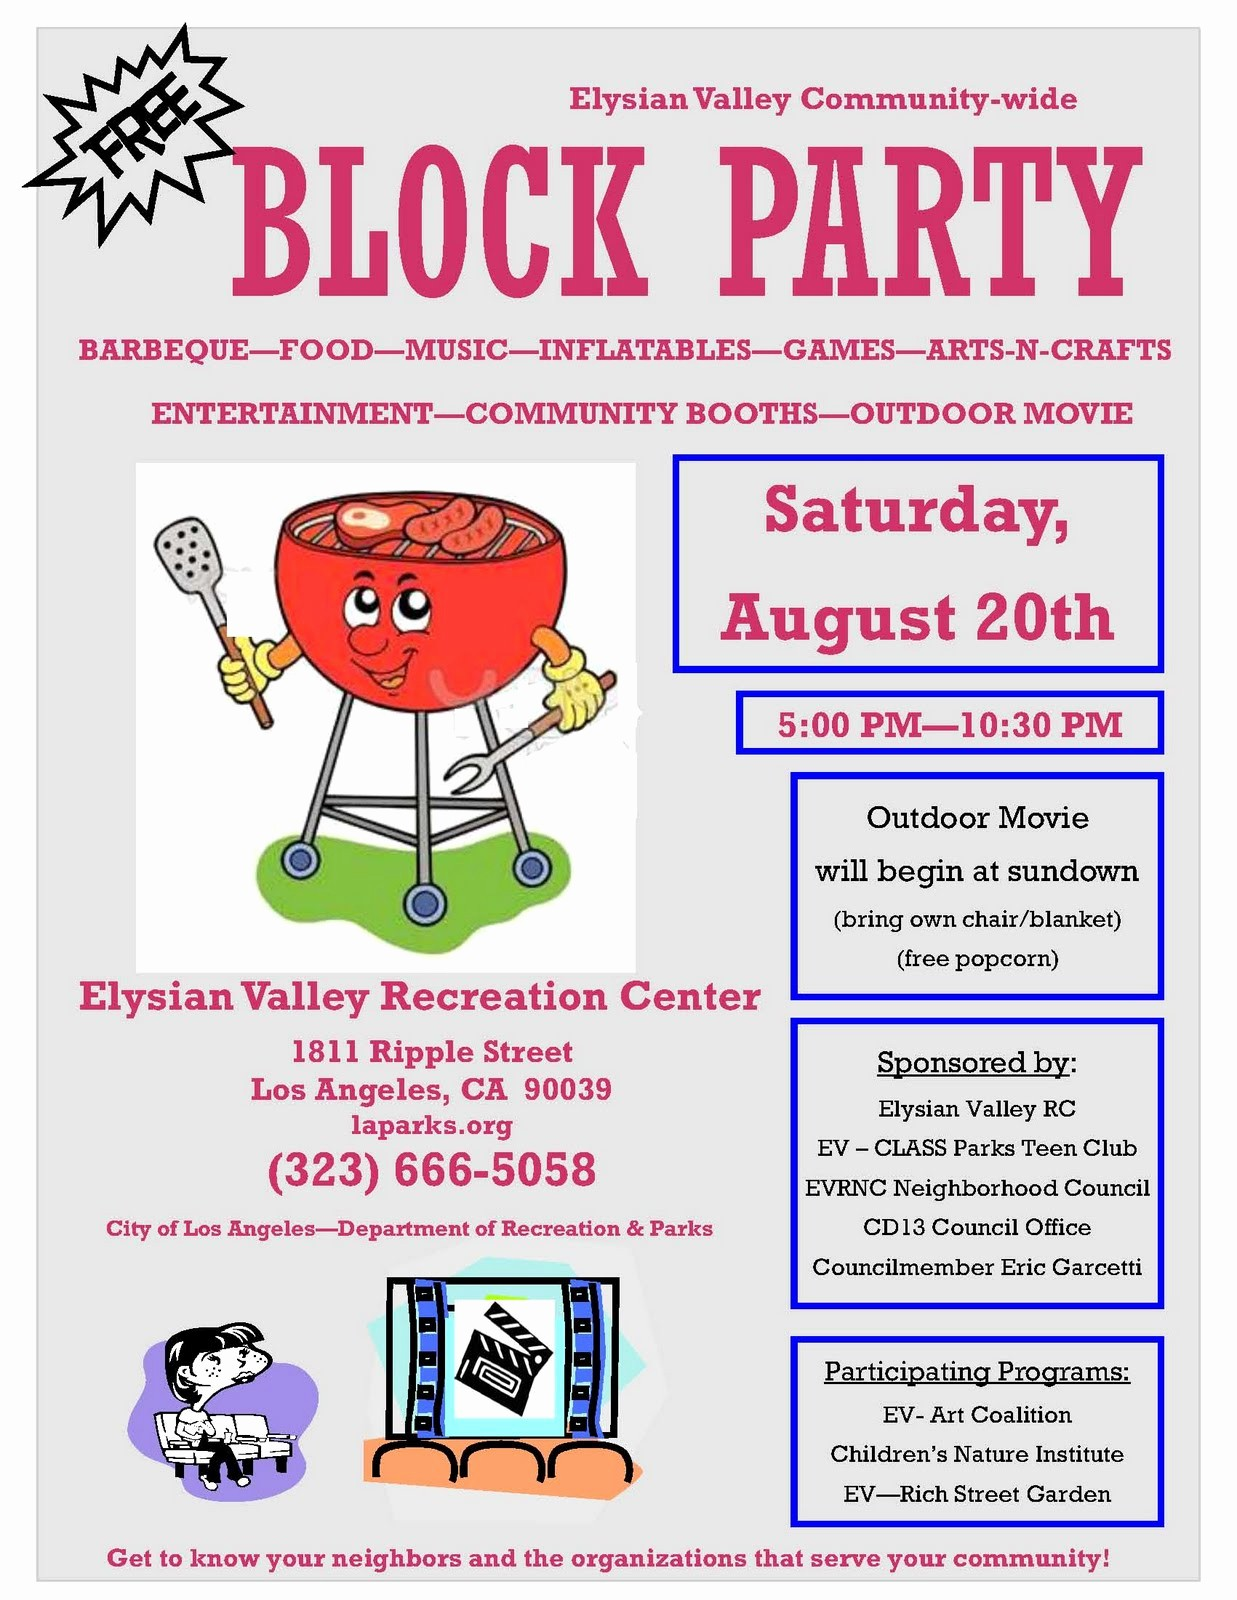 Block Party Flyer Templates Free Unique Lacityorgcd13 Elysian Valley Block Party On August 20